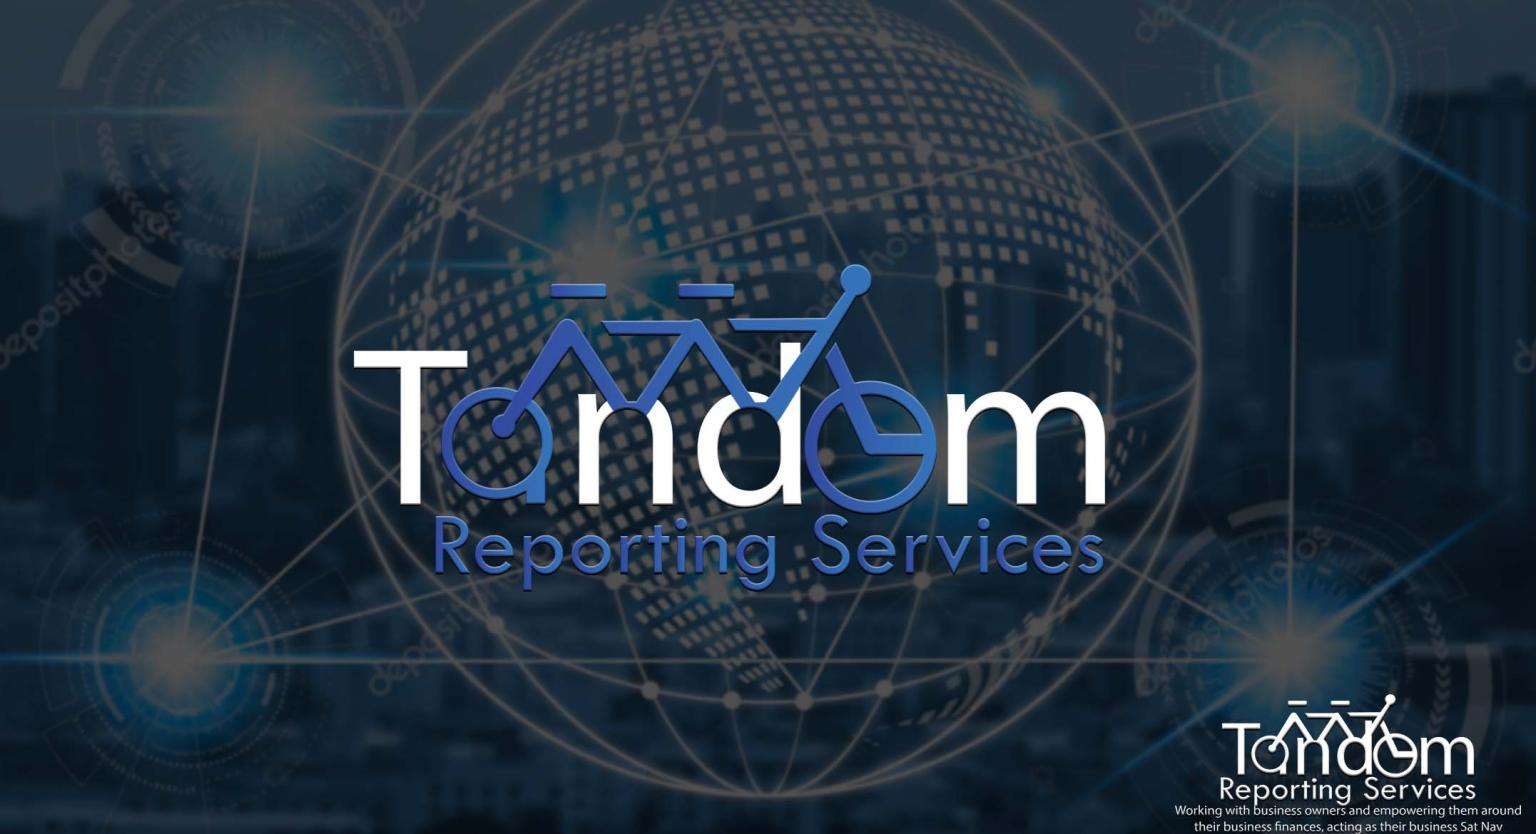 Tandem Reporting Services